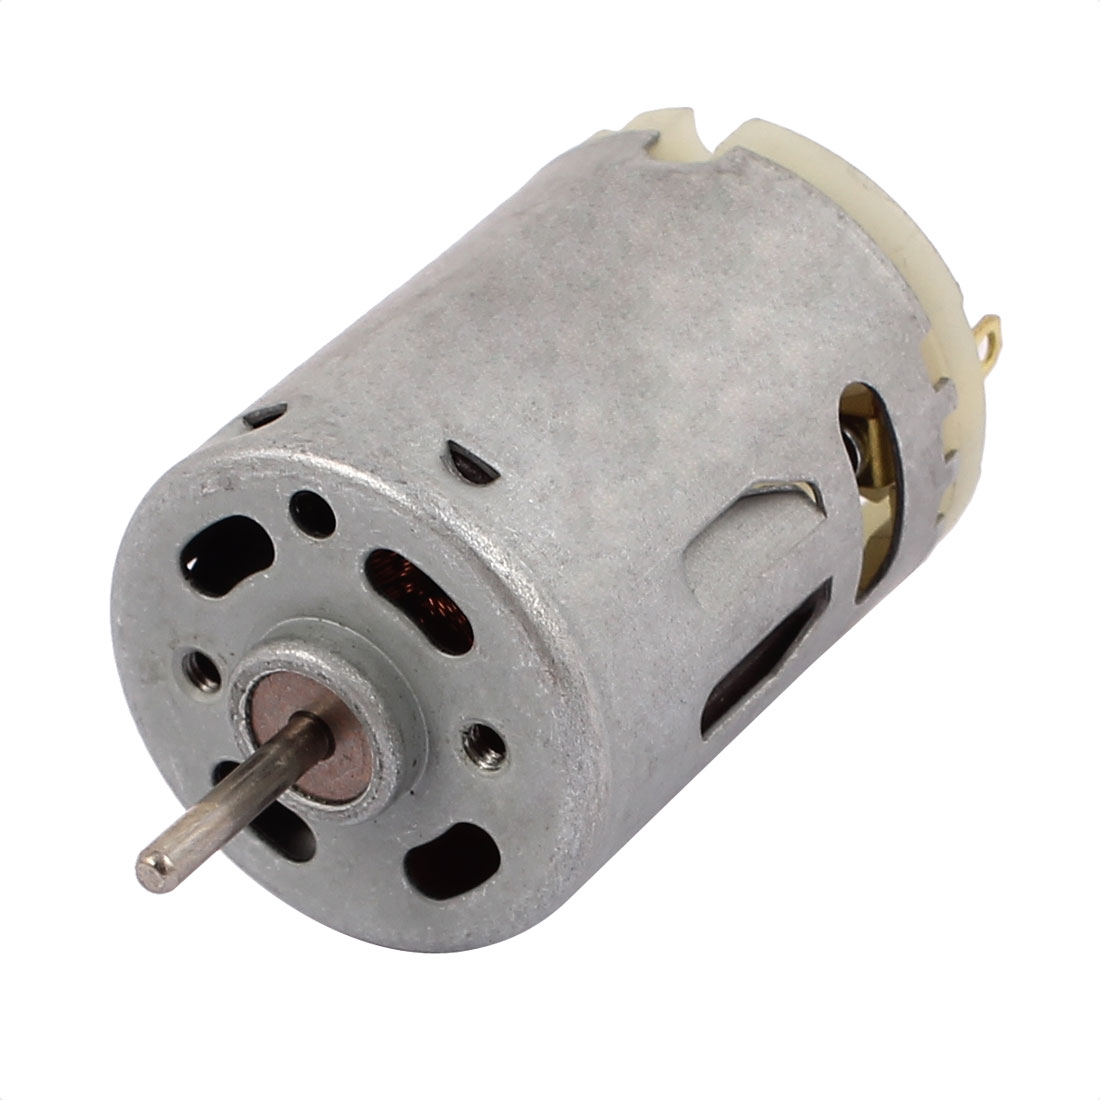 DC 12-24V 29700RPM Strong Magnet Large Torque High Speed Micro DC Motor for Electronic Toy